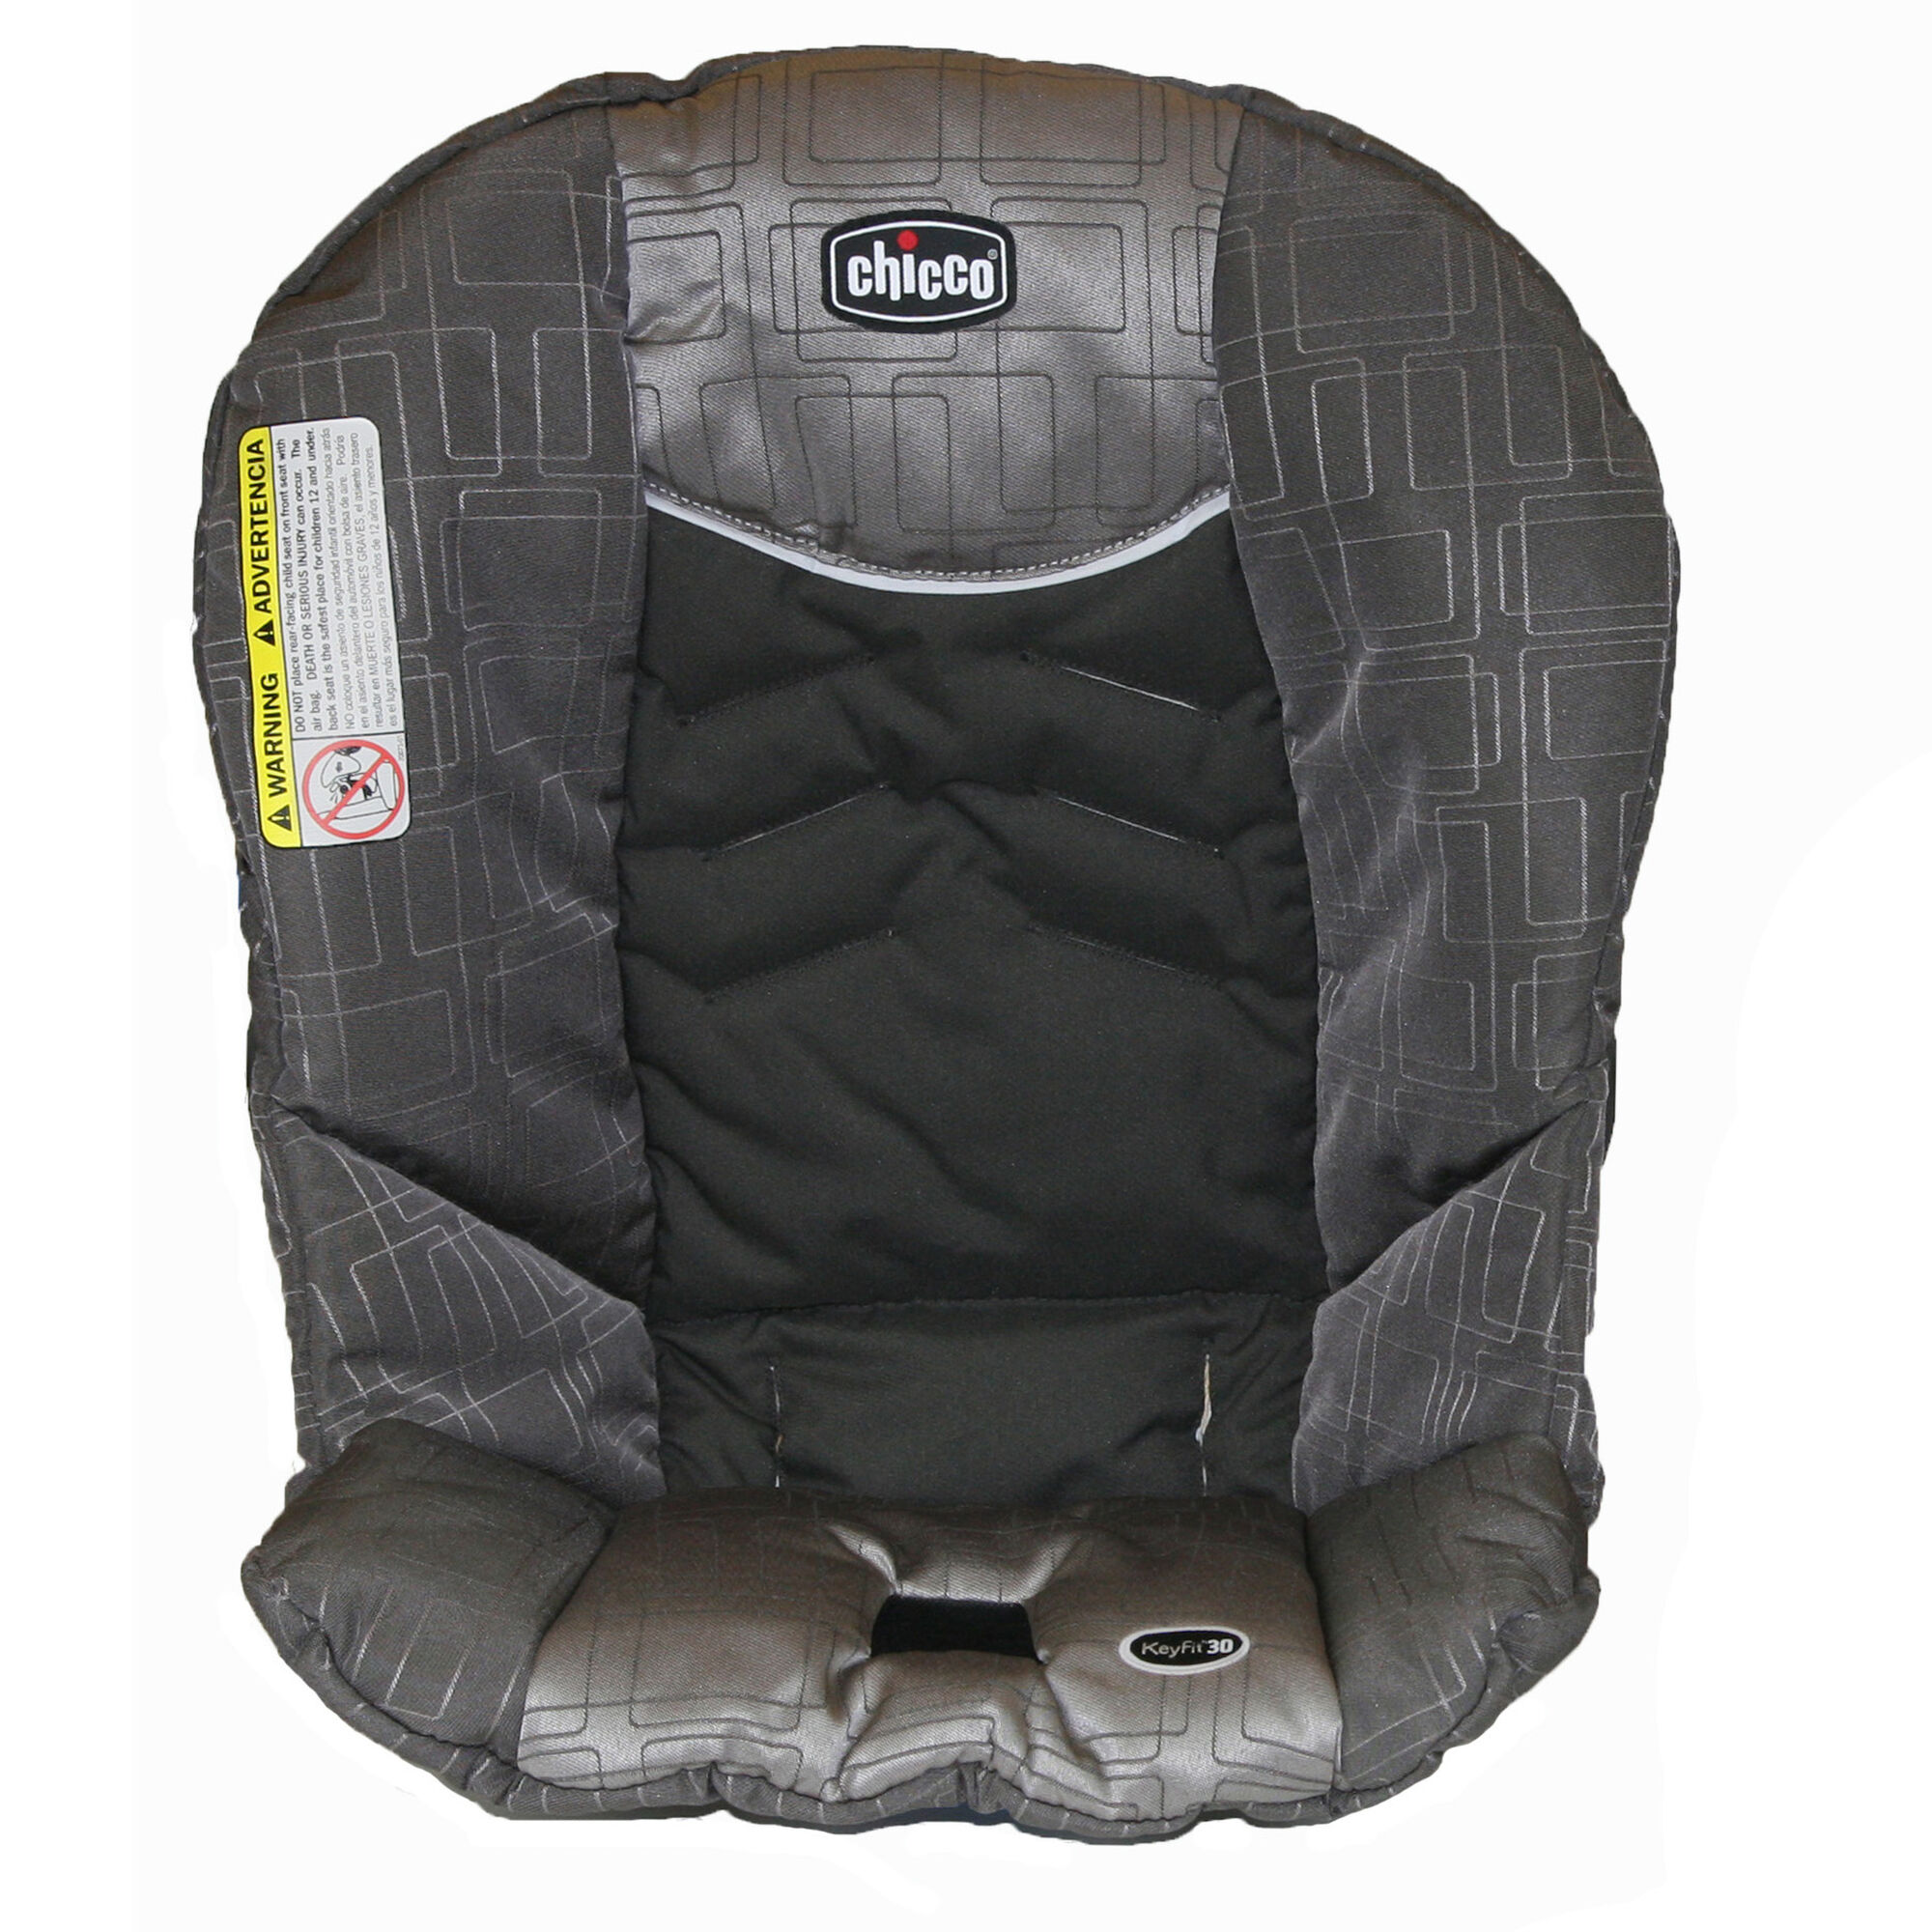 Replacement Seat Cover For The Chicco KeyFit 30 Infant Car